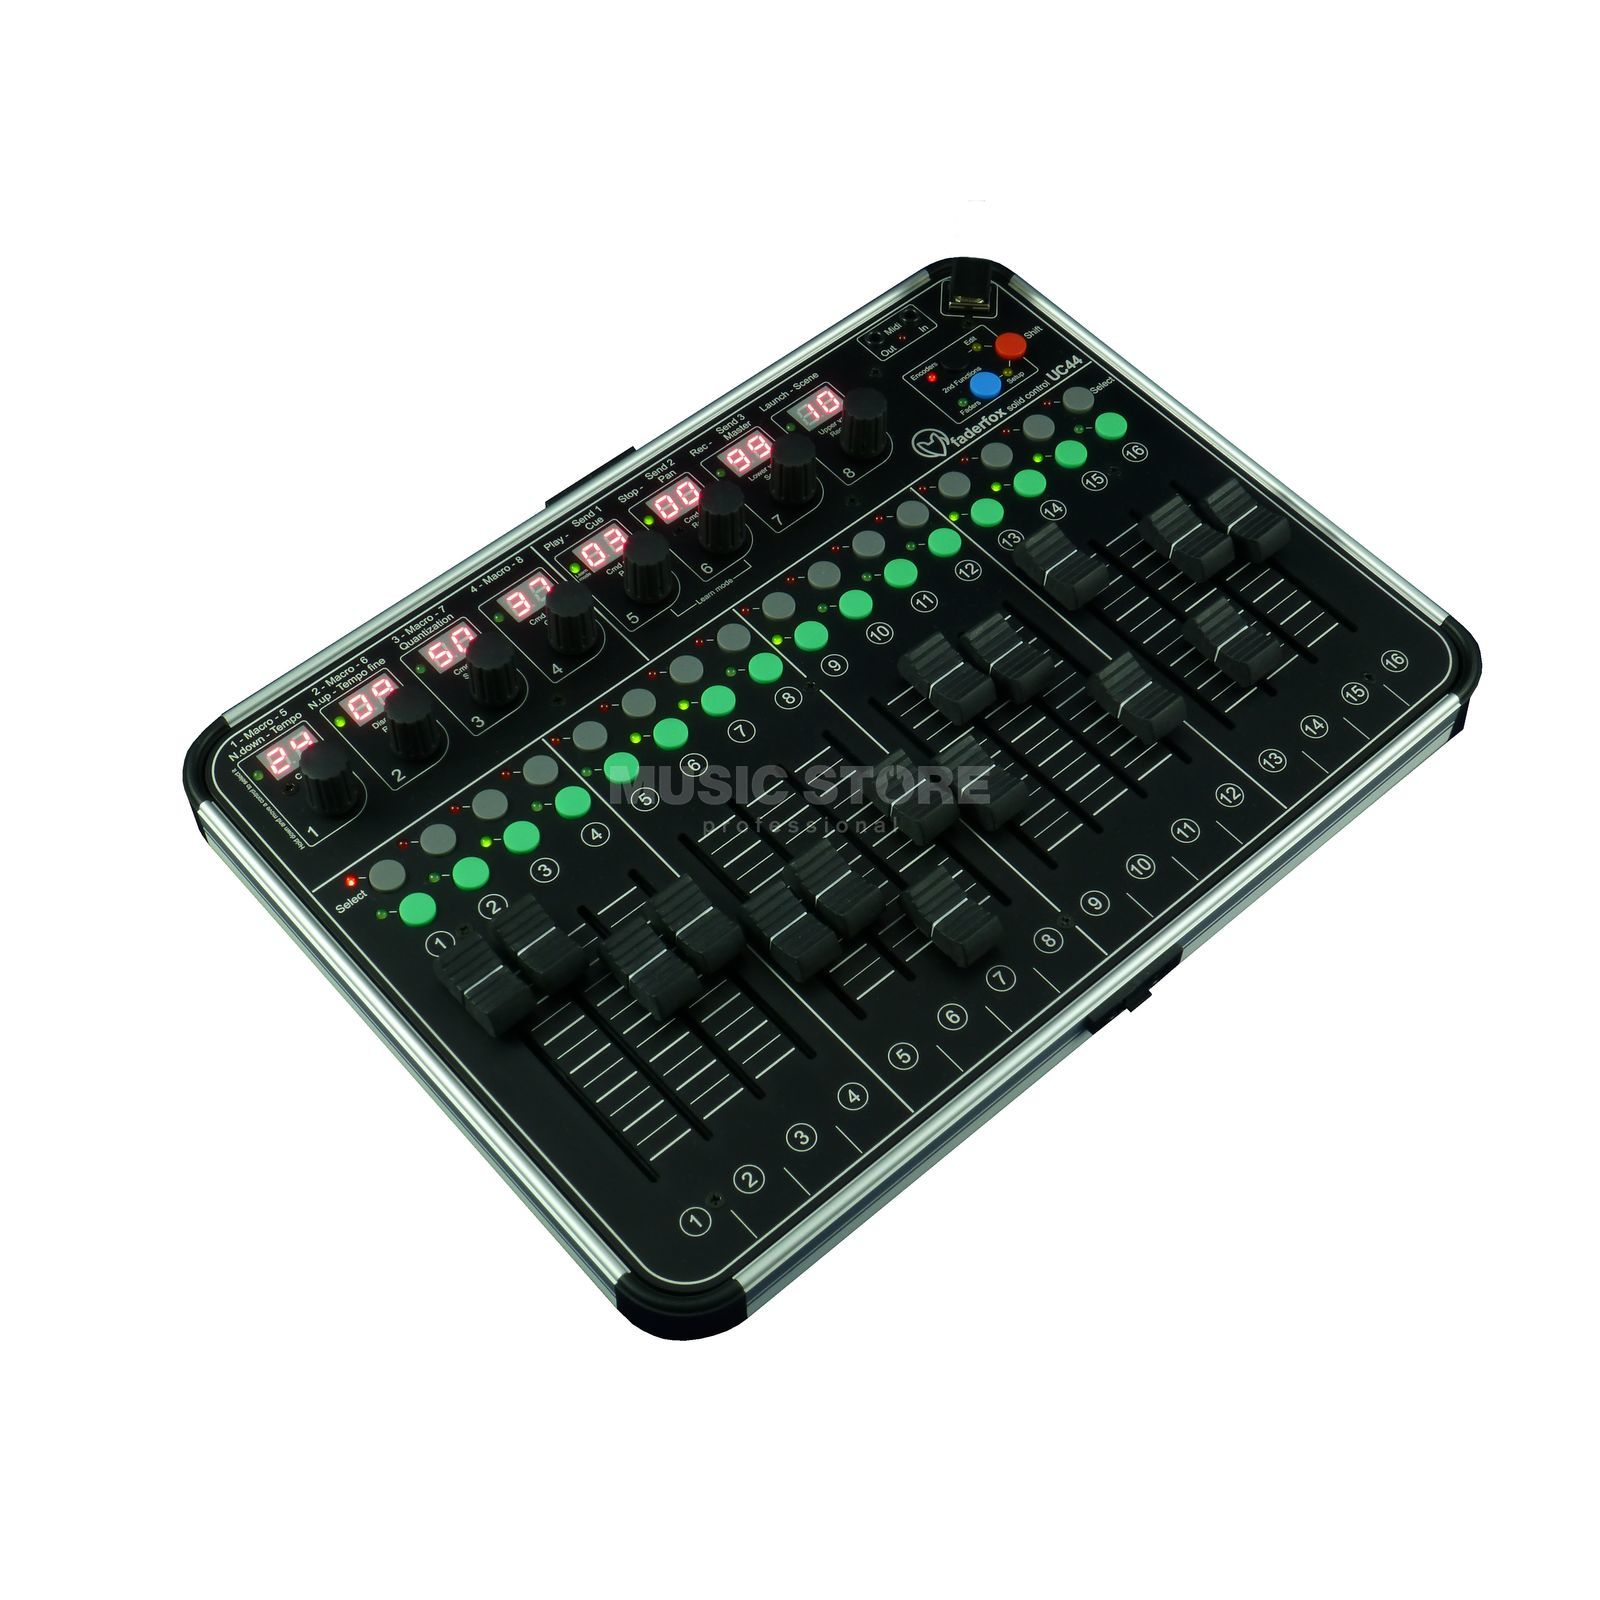 Faderfox UC44 - The Fader Box Produktbillede